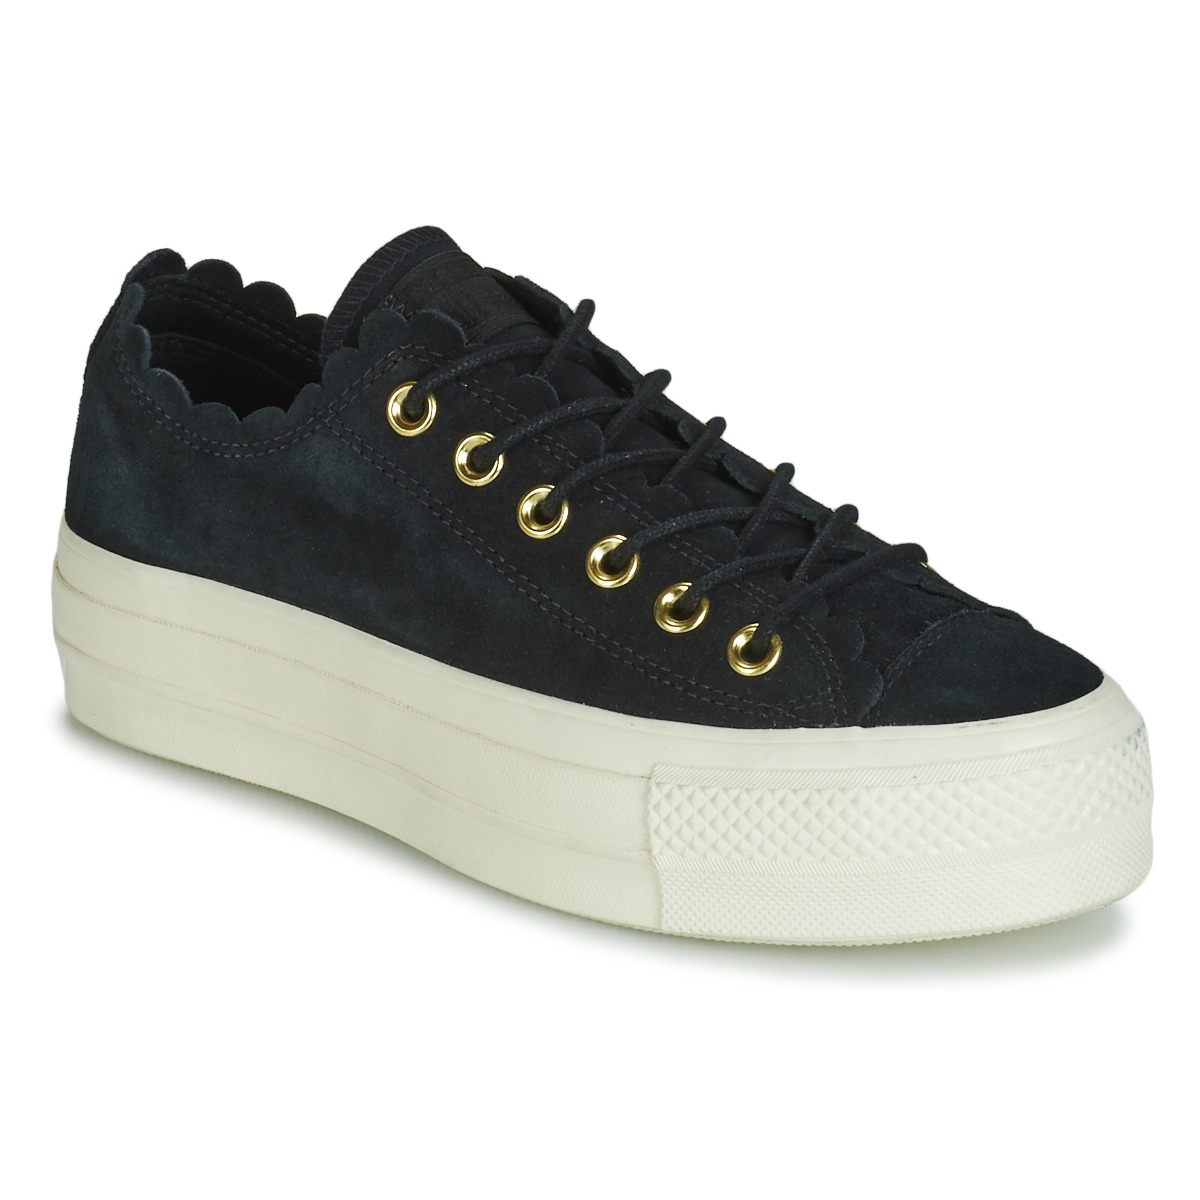 Sneakers Scarpe donna Converse CHUCK TAYLOR ALL STAR PLATFORM FRILLY THRILLS SUEDE OX Nero